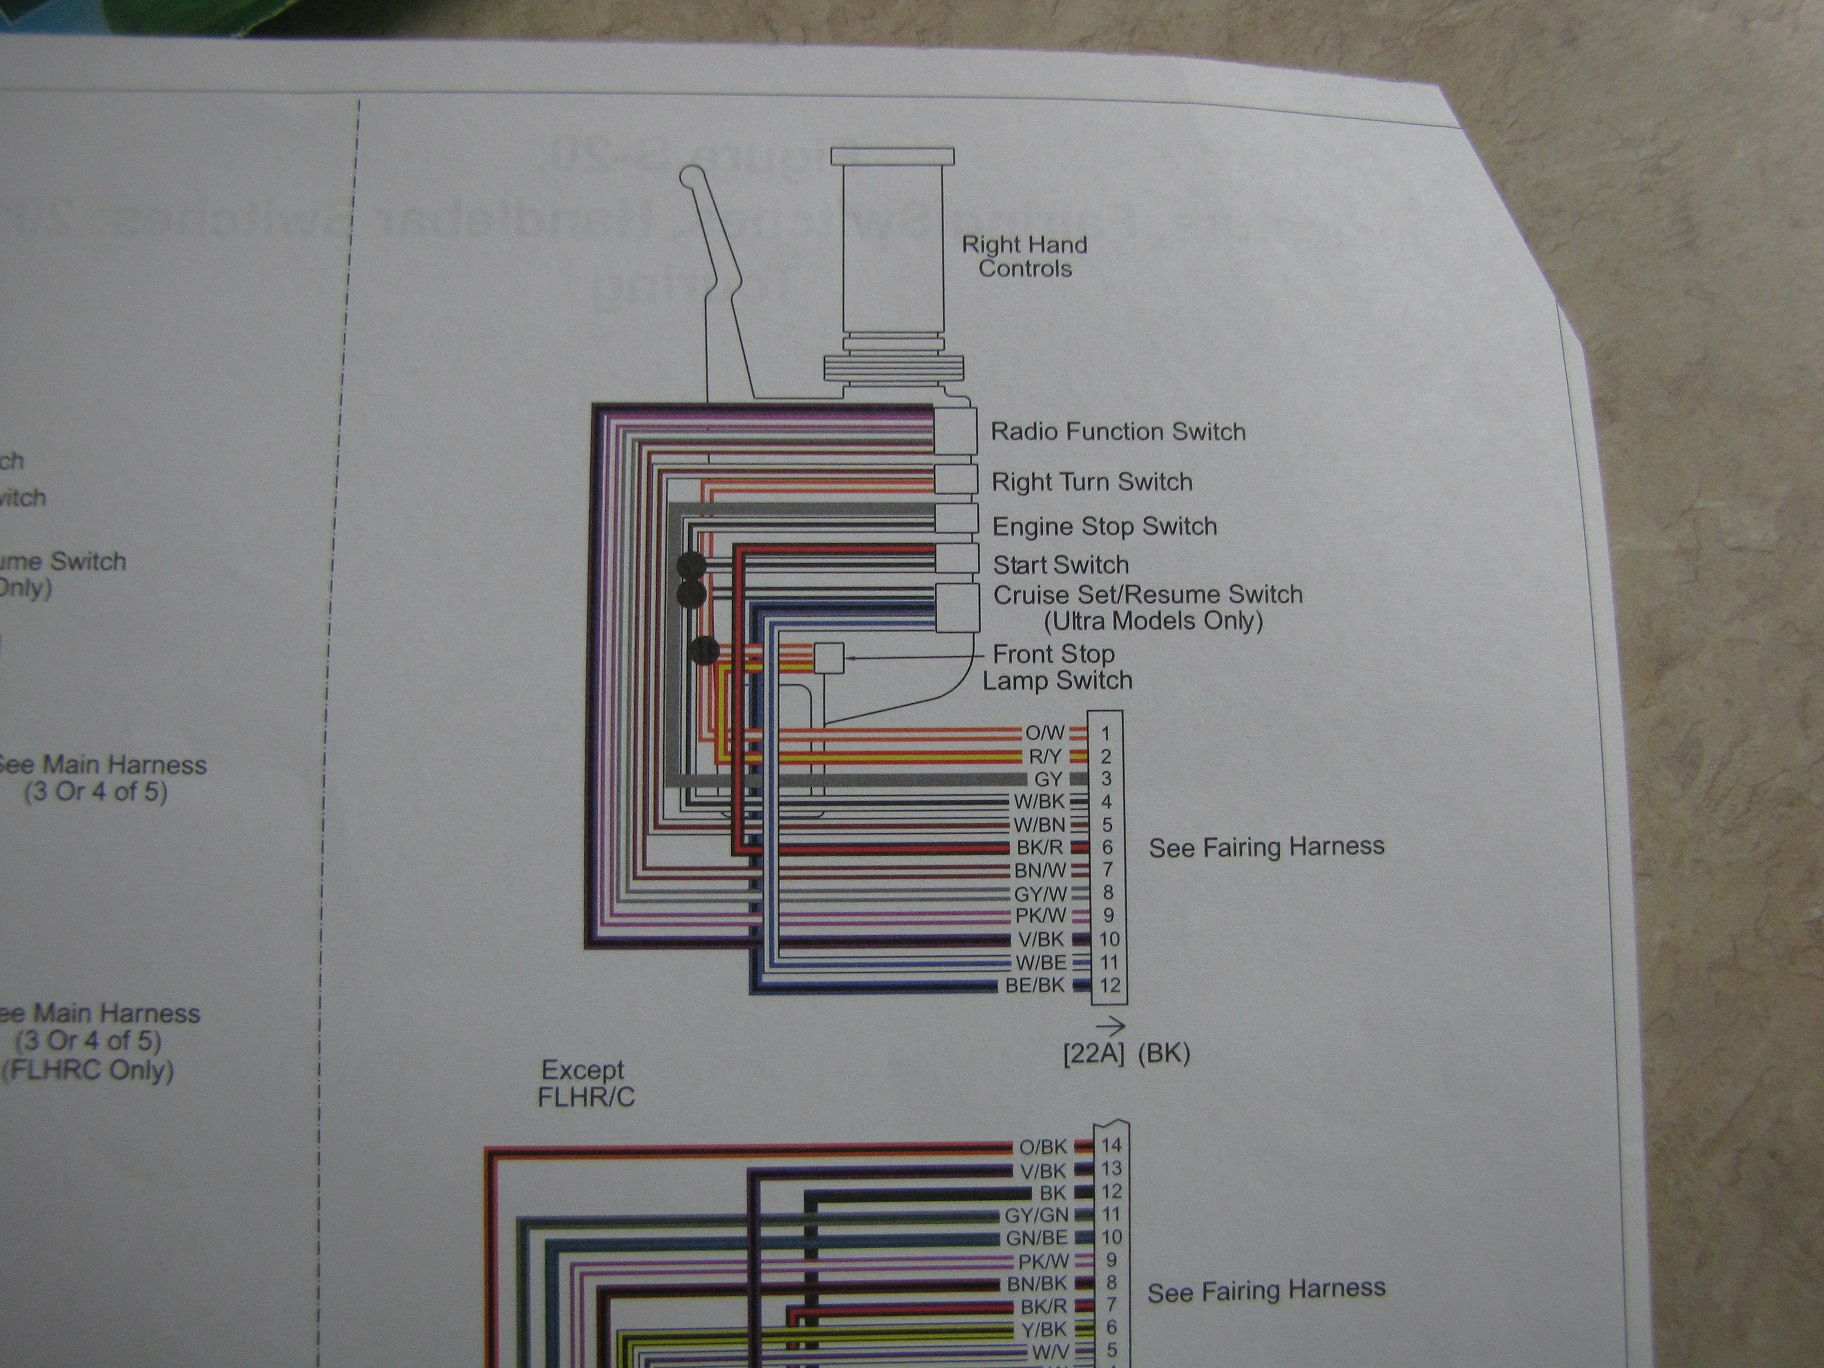 hight resolution of 2012 street glide wiring diagram opinions about wiring diagram u2022 rh voterid co